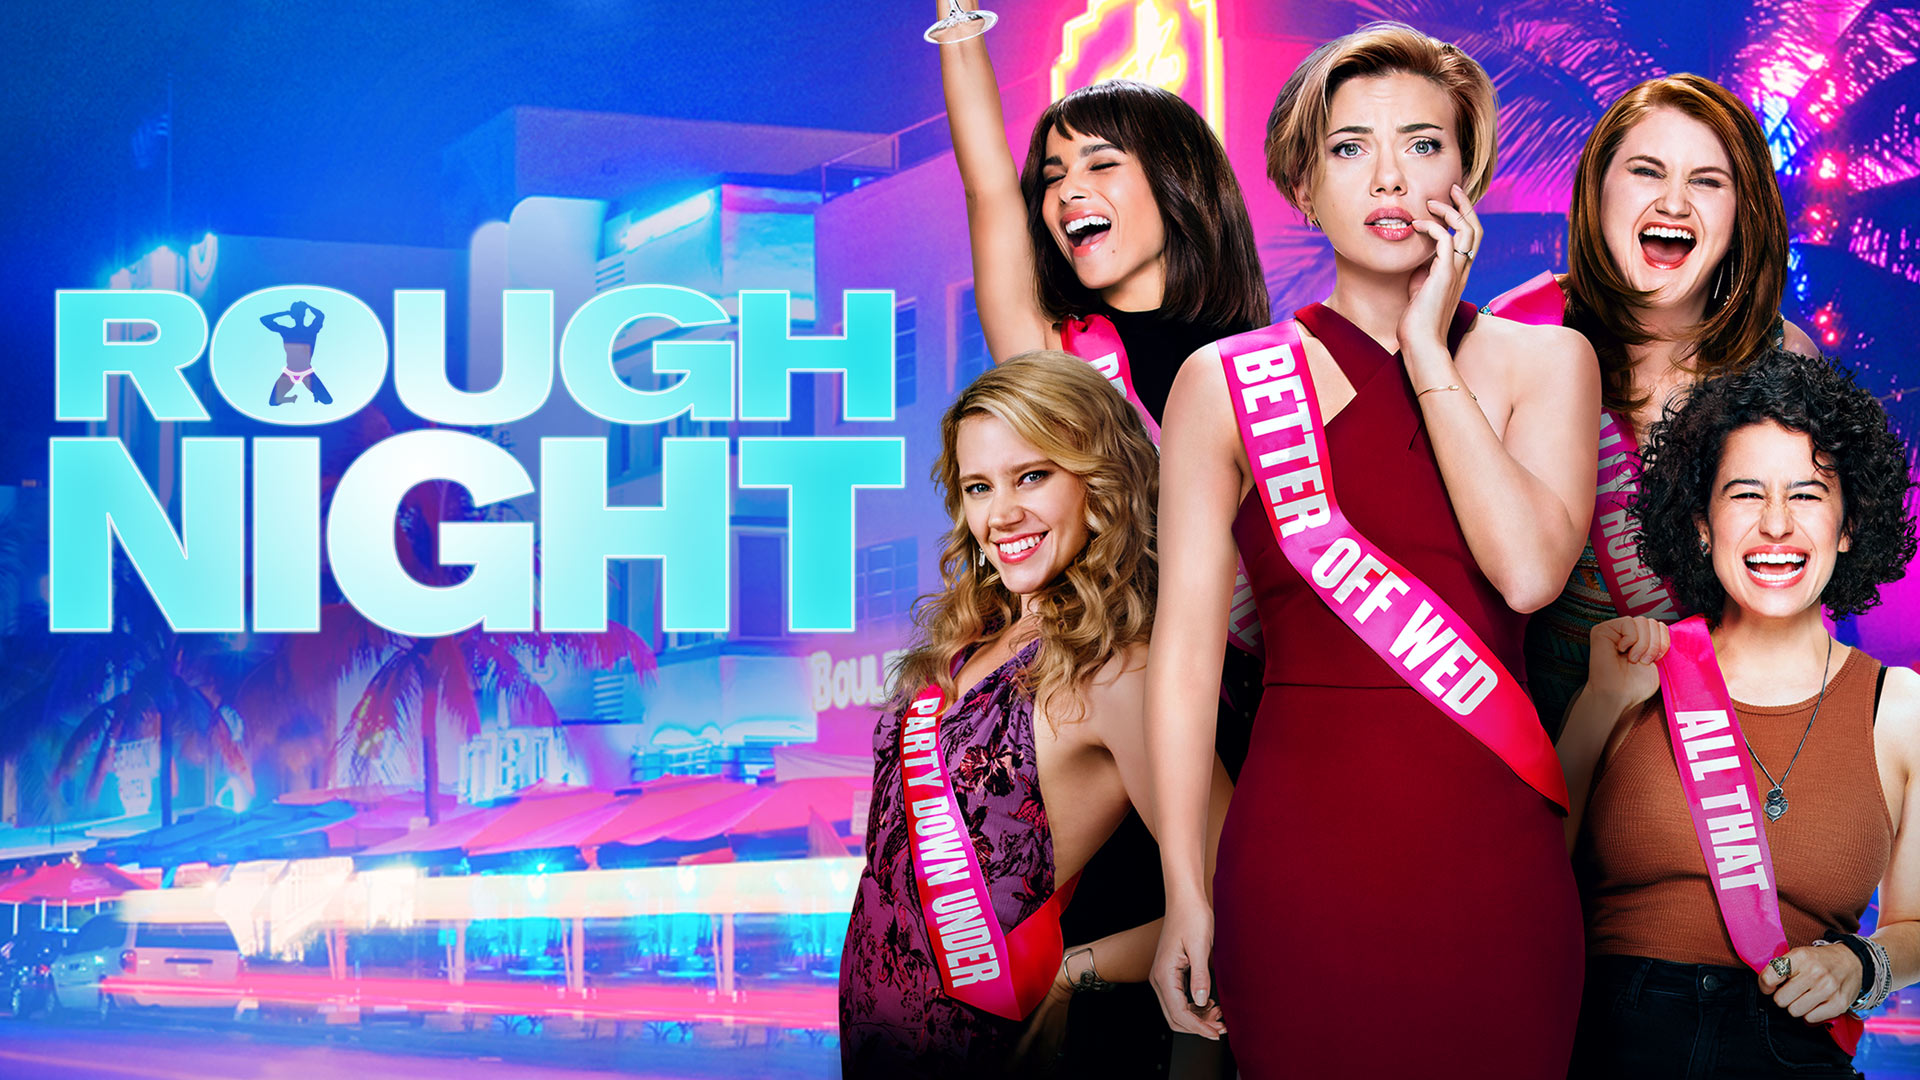 Rough Night (4K UHD)